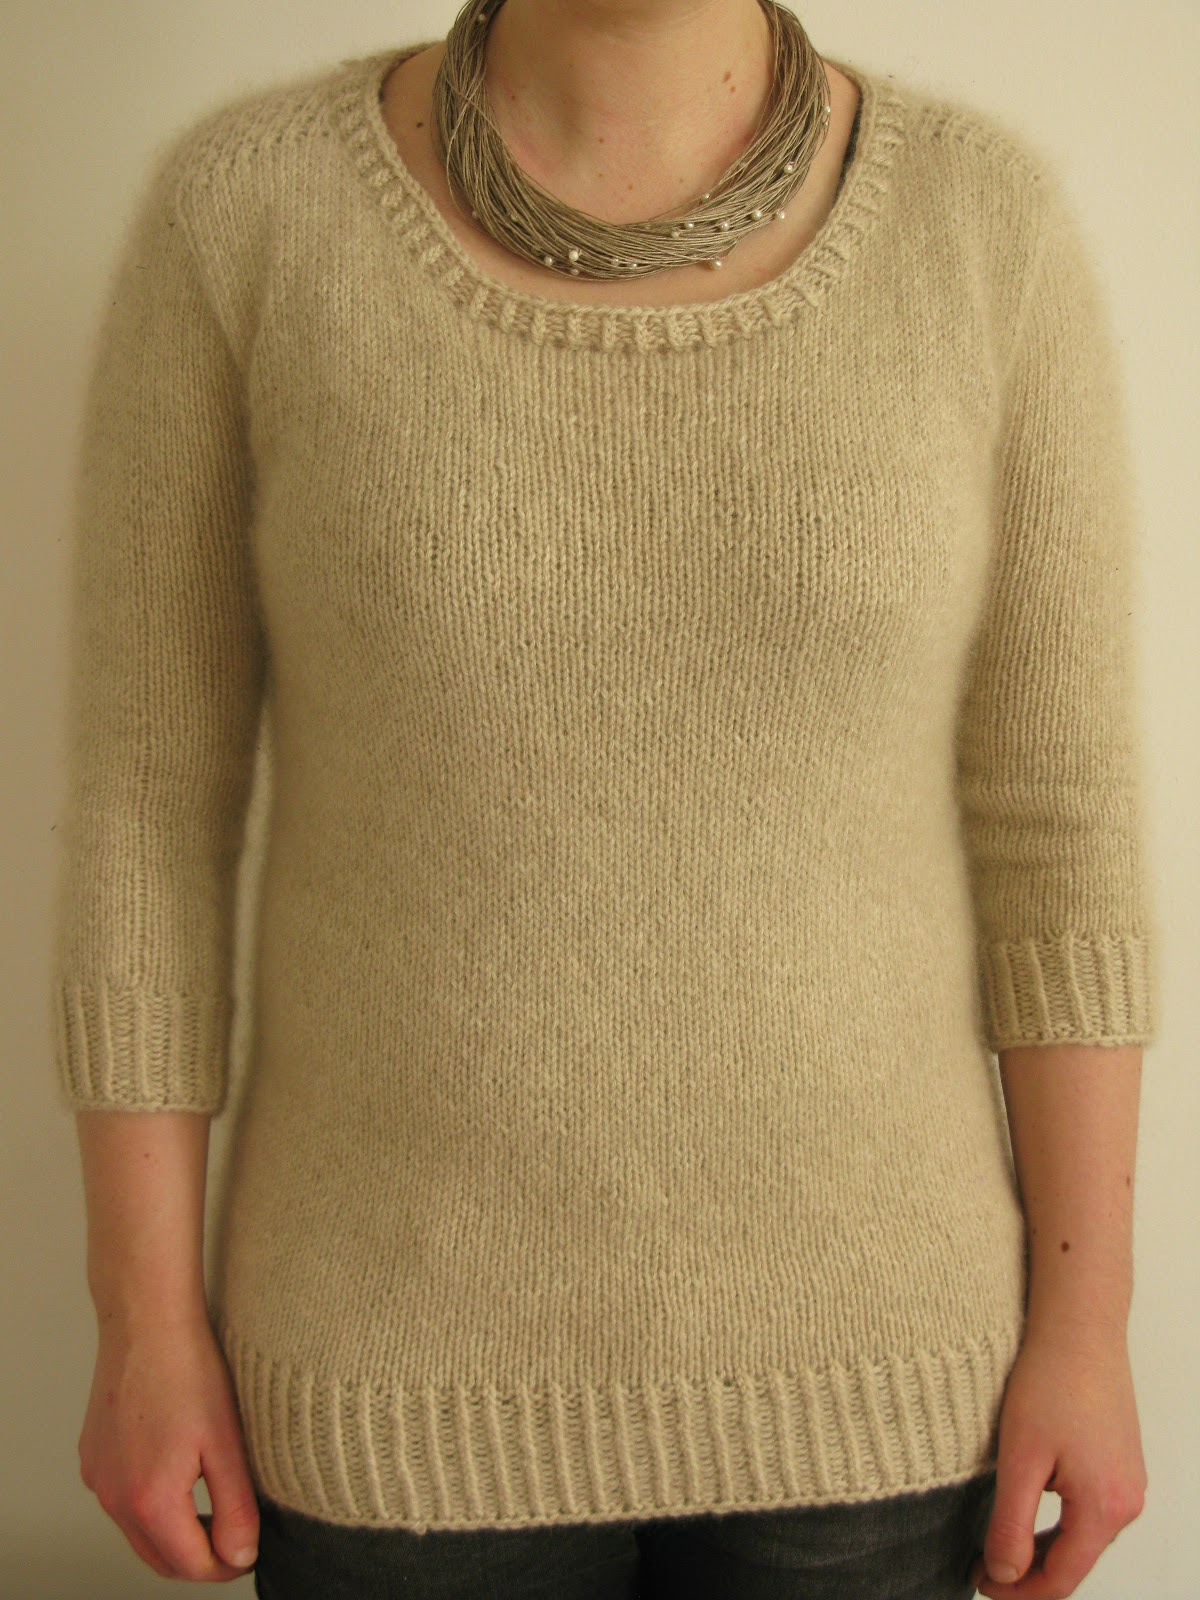 basic sweater knitting pattern